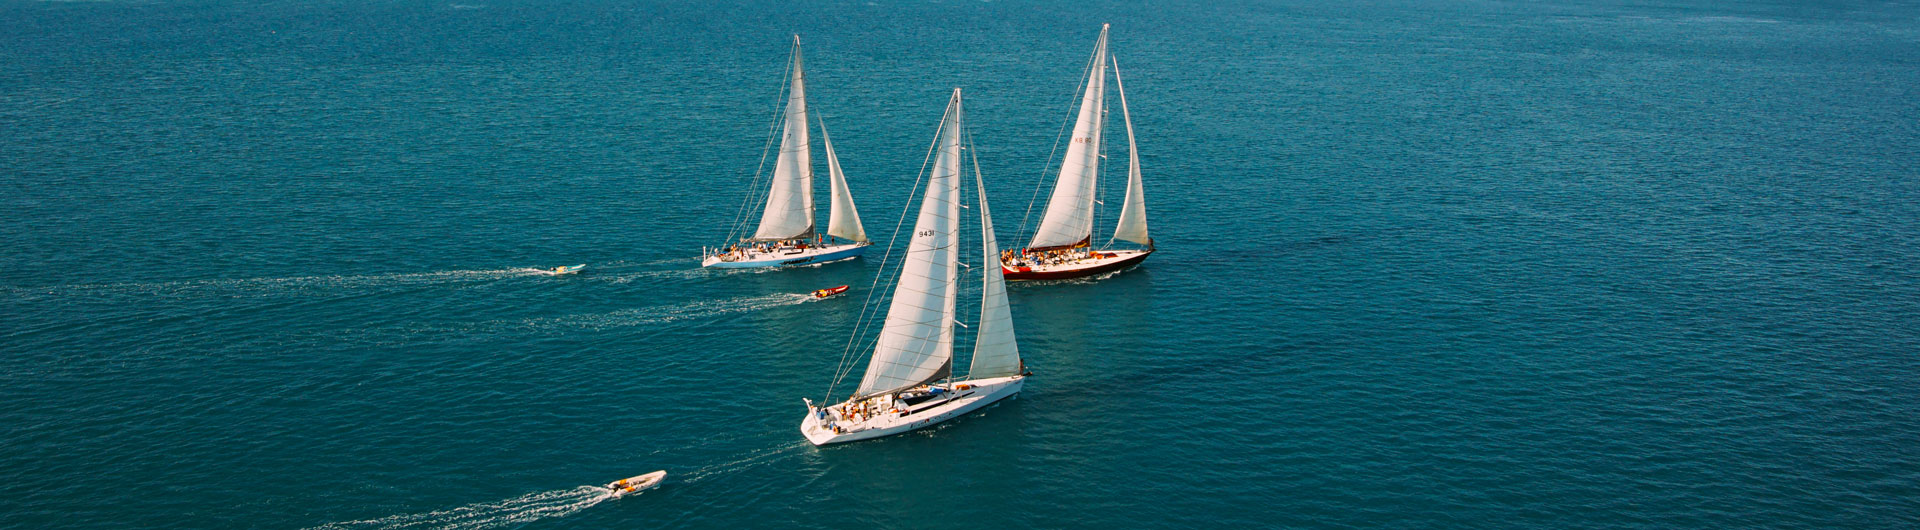 Prosail Whitsundays Ultimate Sailing Tours (Real Racing Yachts)